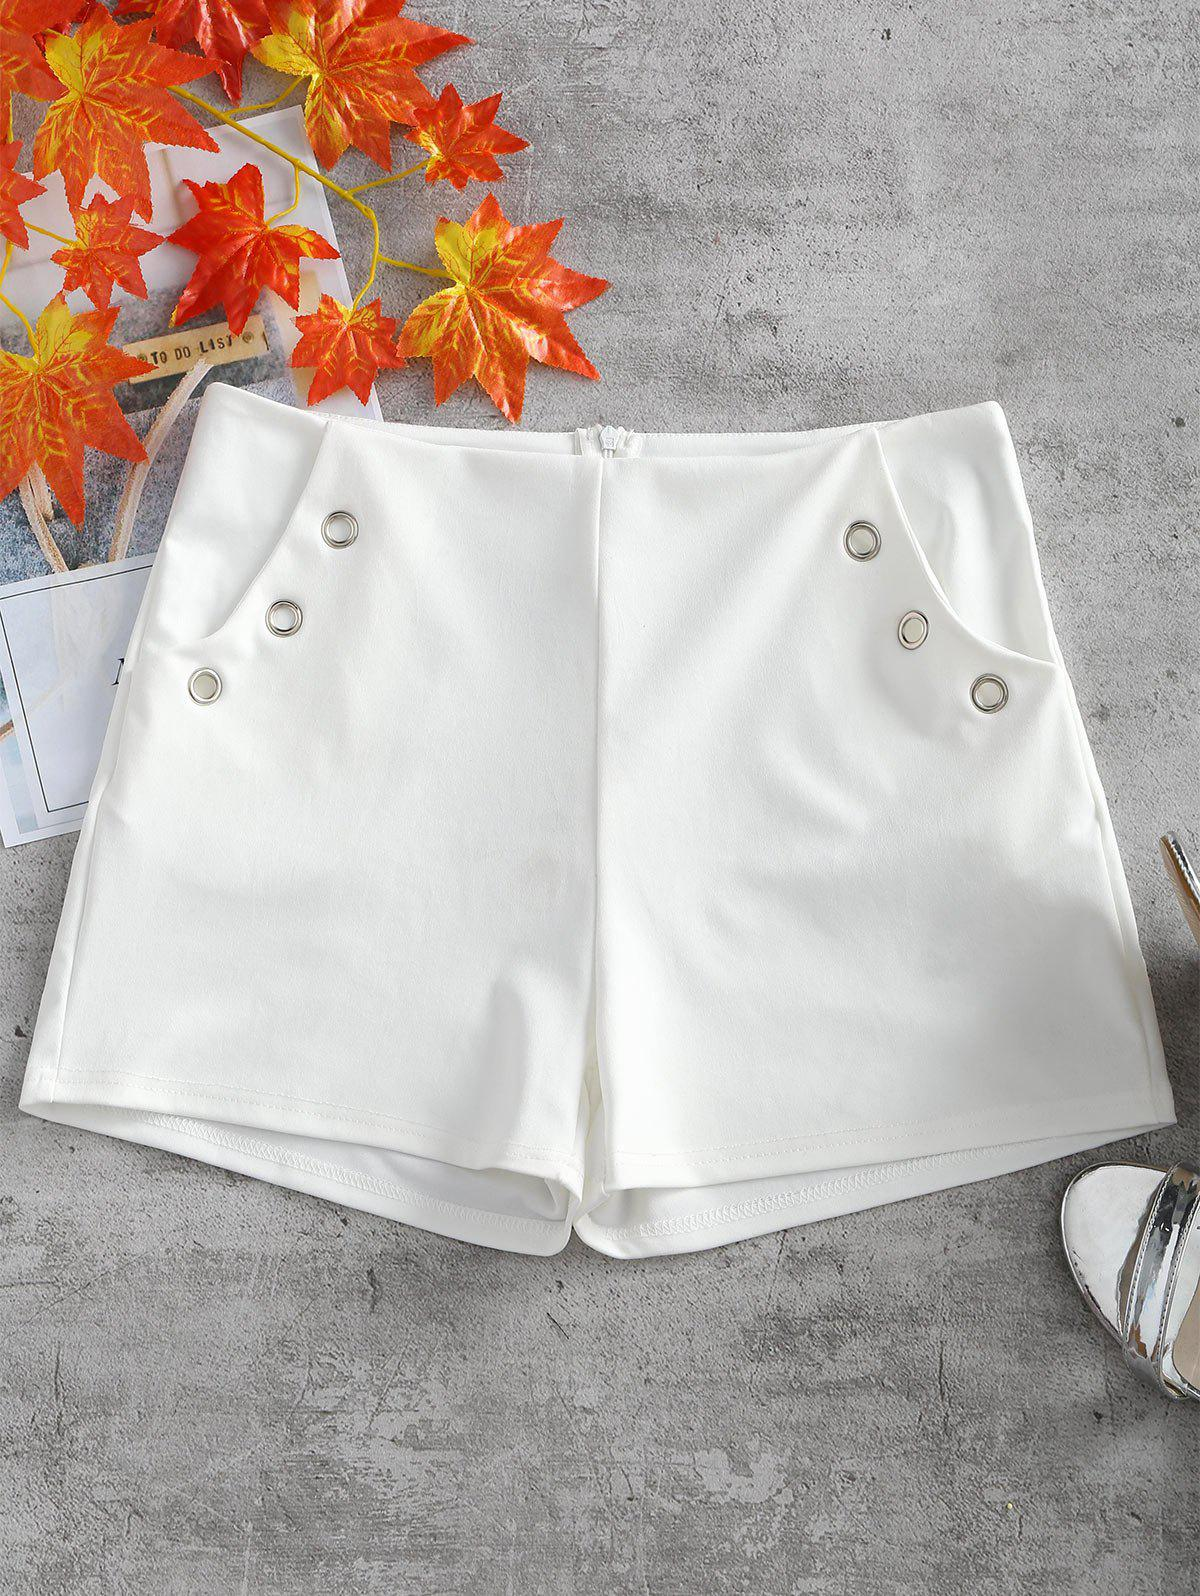 Metal Ring Embellished Pockets Shorts 253456703